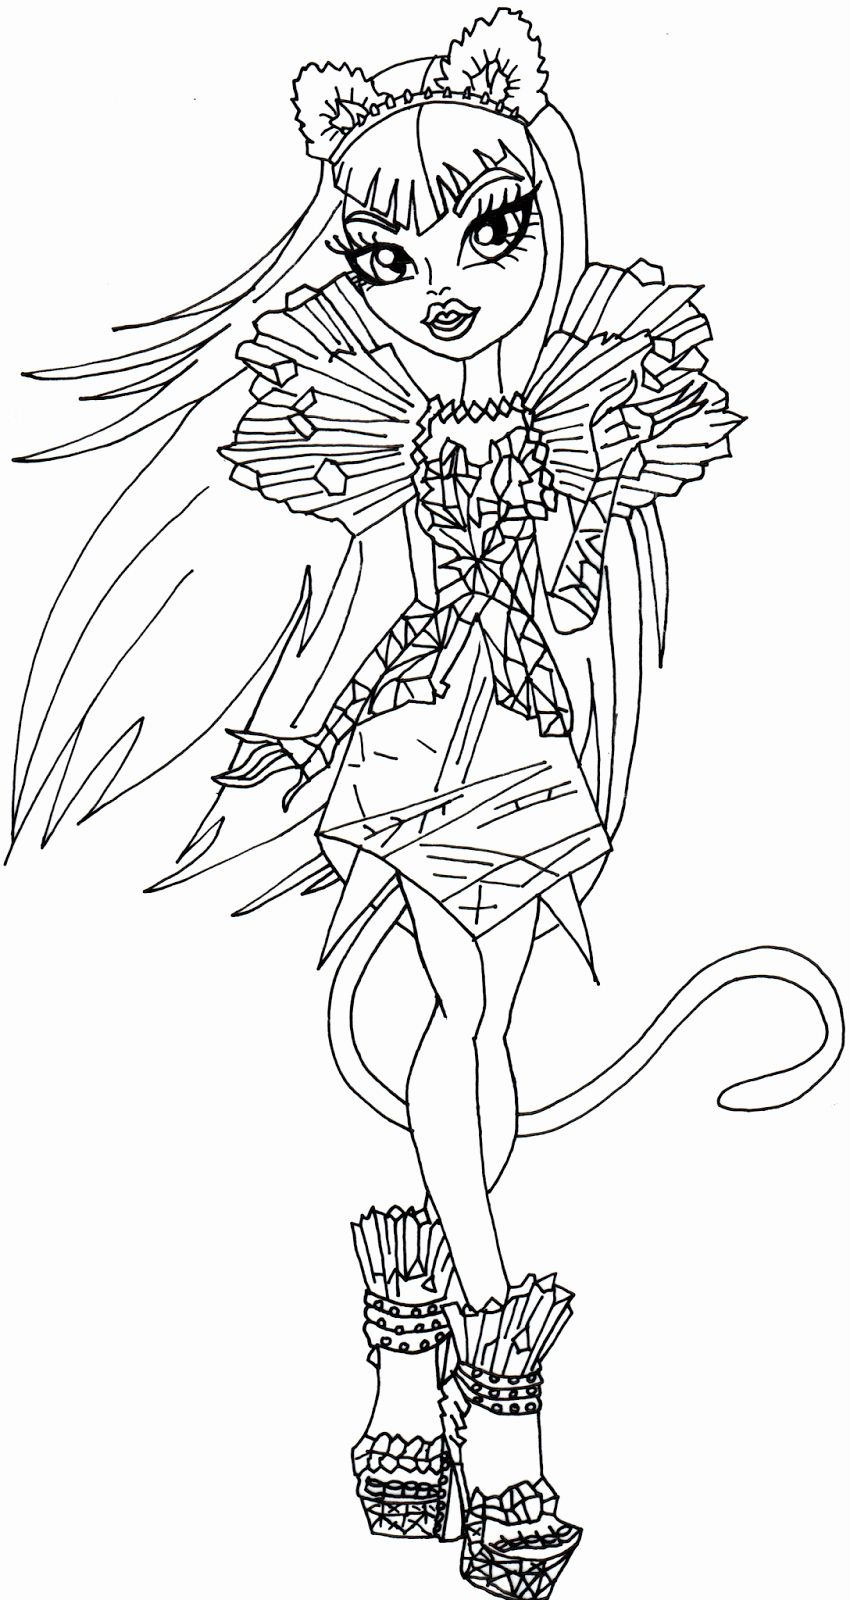 Monster High Coloring Pages Printable Luxury Free Printable Monster High Coloring Pages Catty Noir B Monster Coloring Pages Coloring Pages Horse Coloring Pages